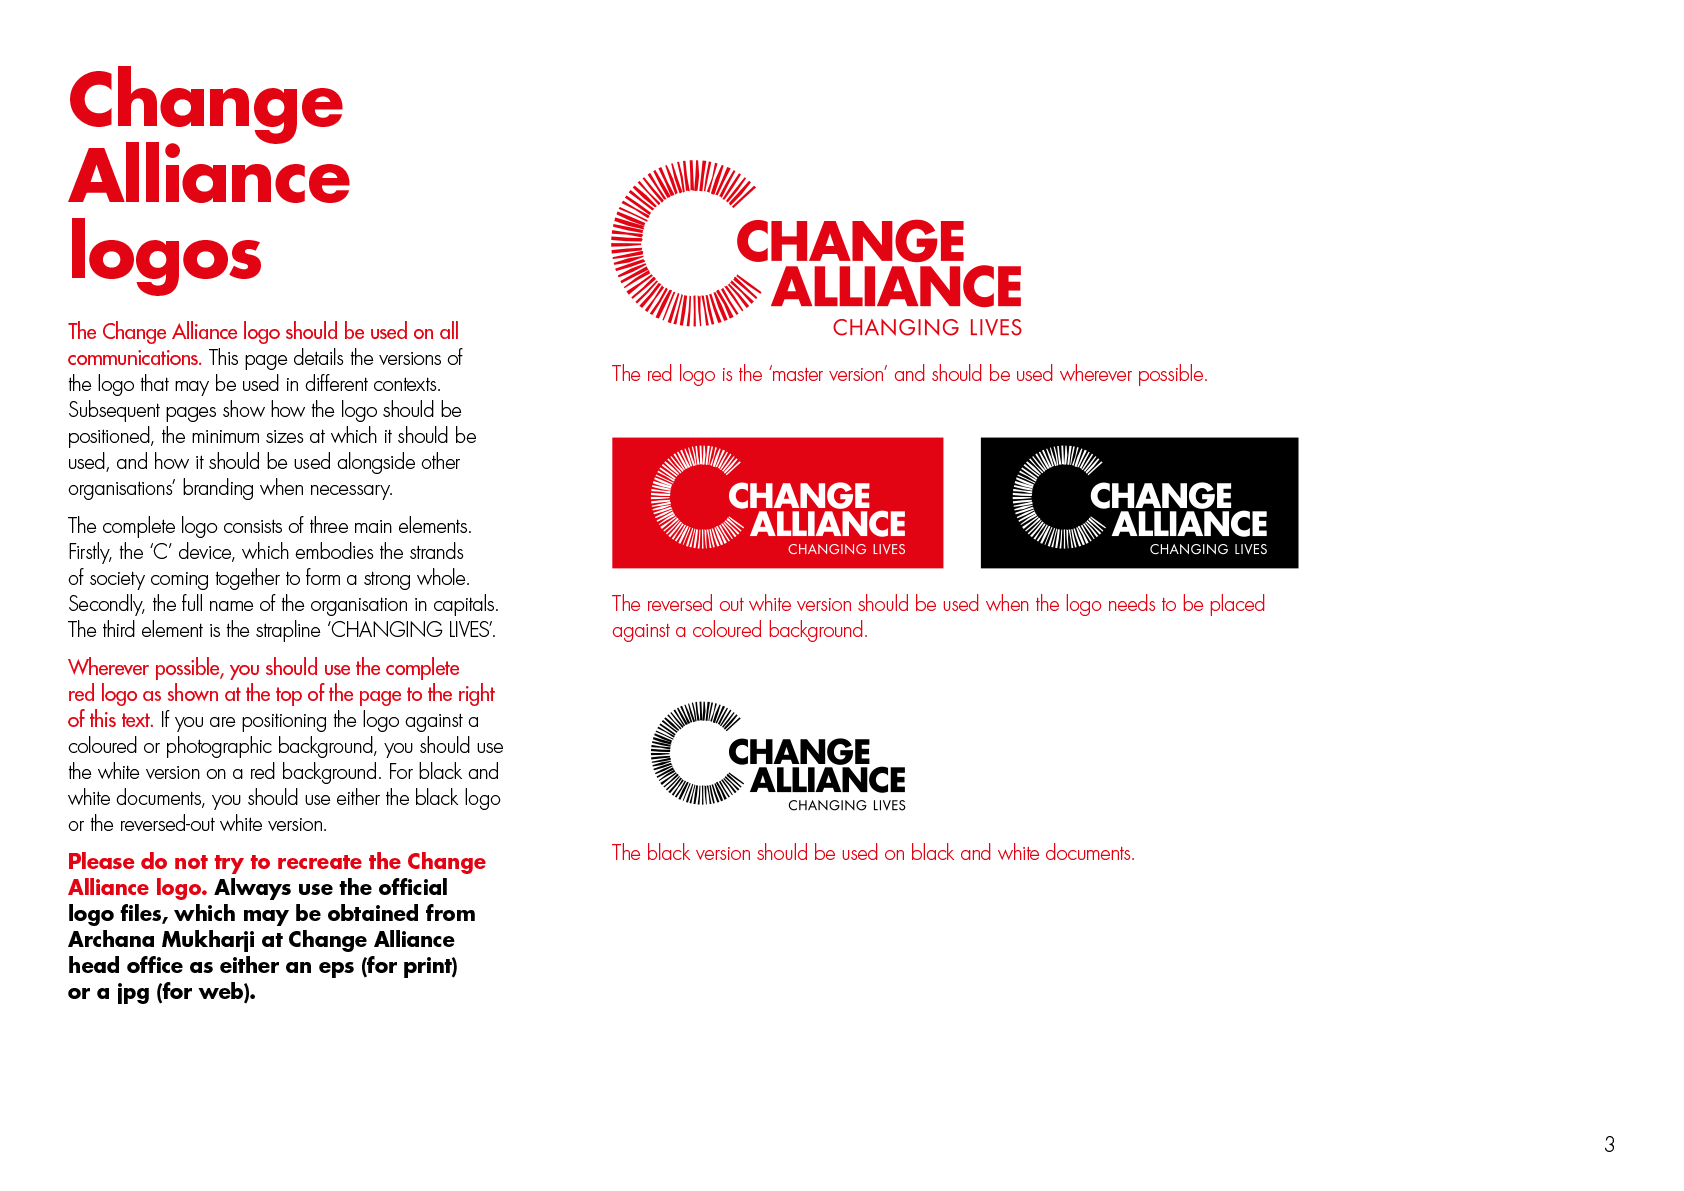 J2489-change alliance guidelines AW-3